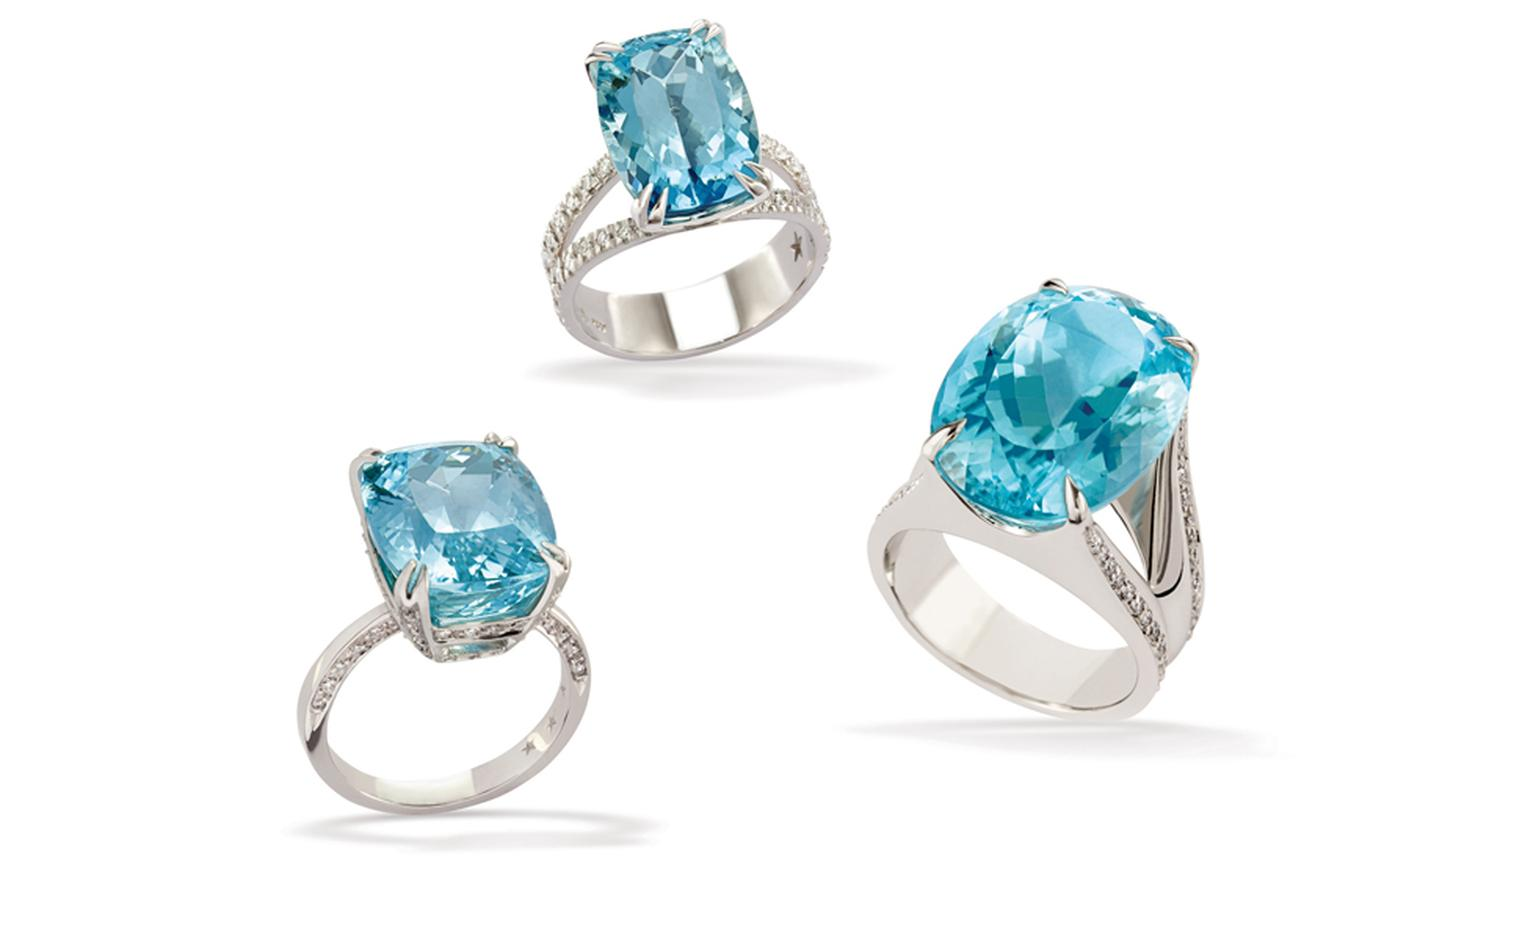 H.Stern tempts with exquisite Paraiba tourmalines